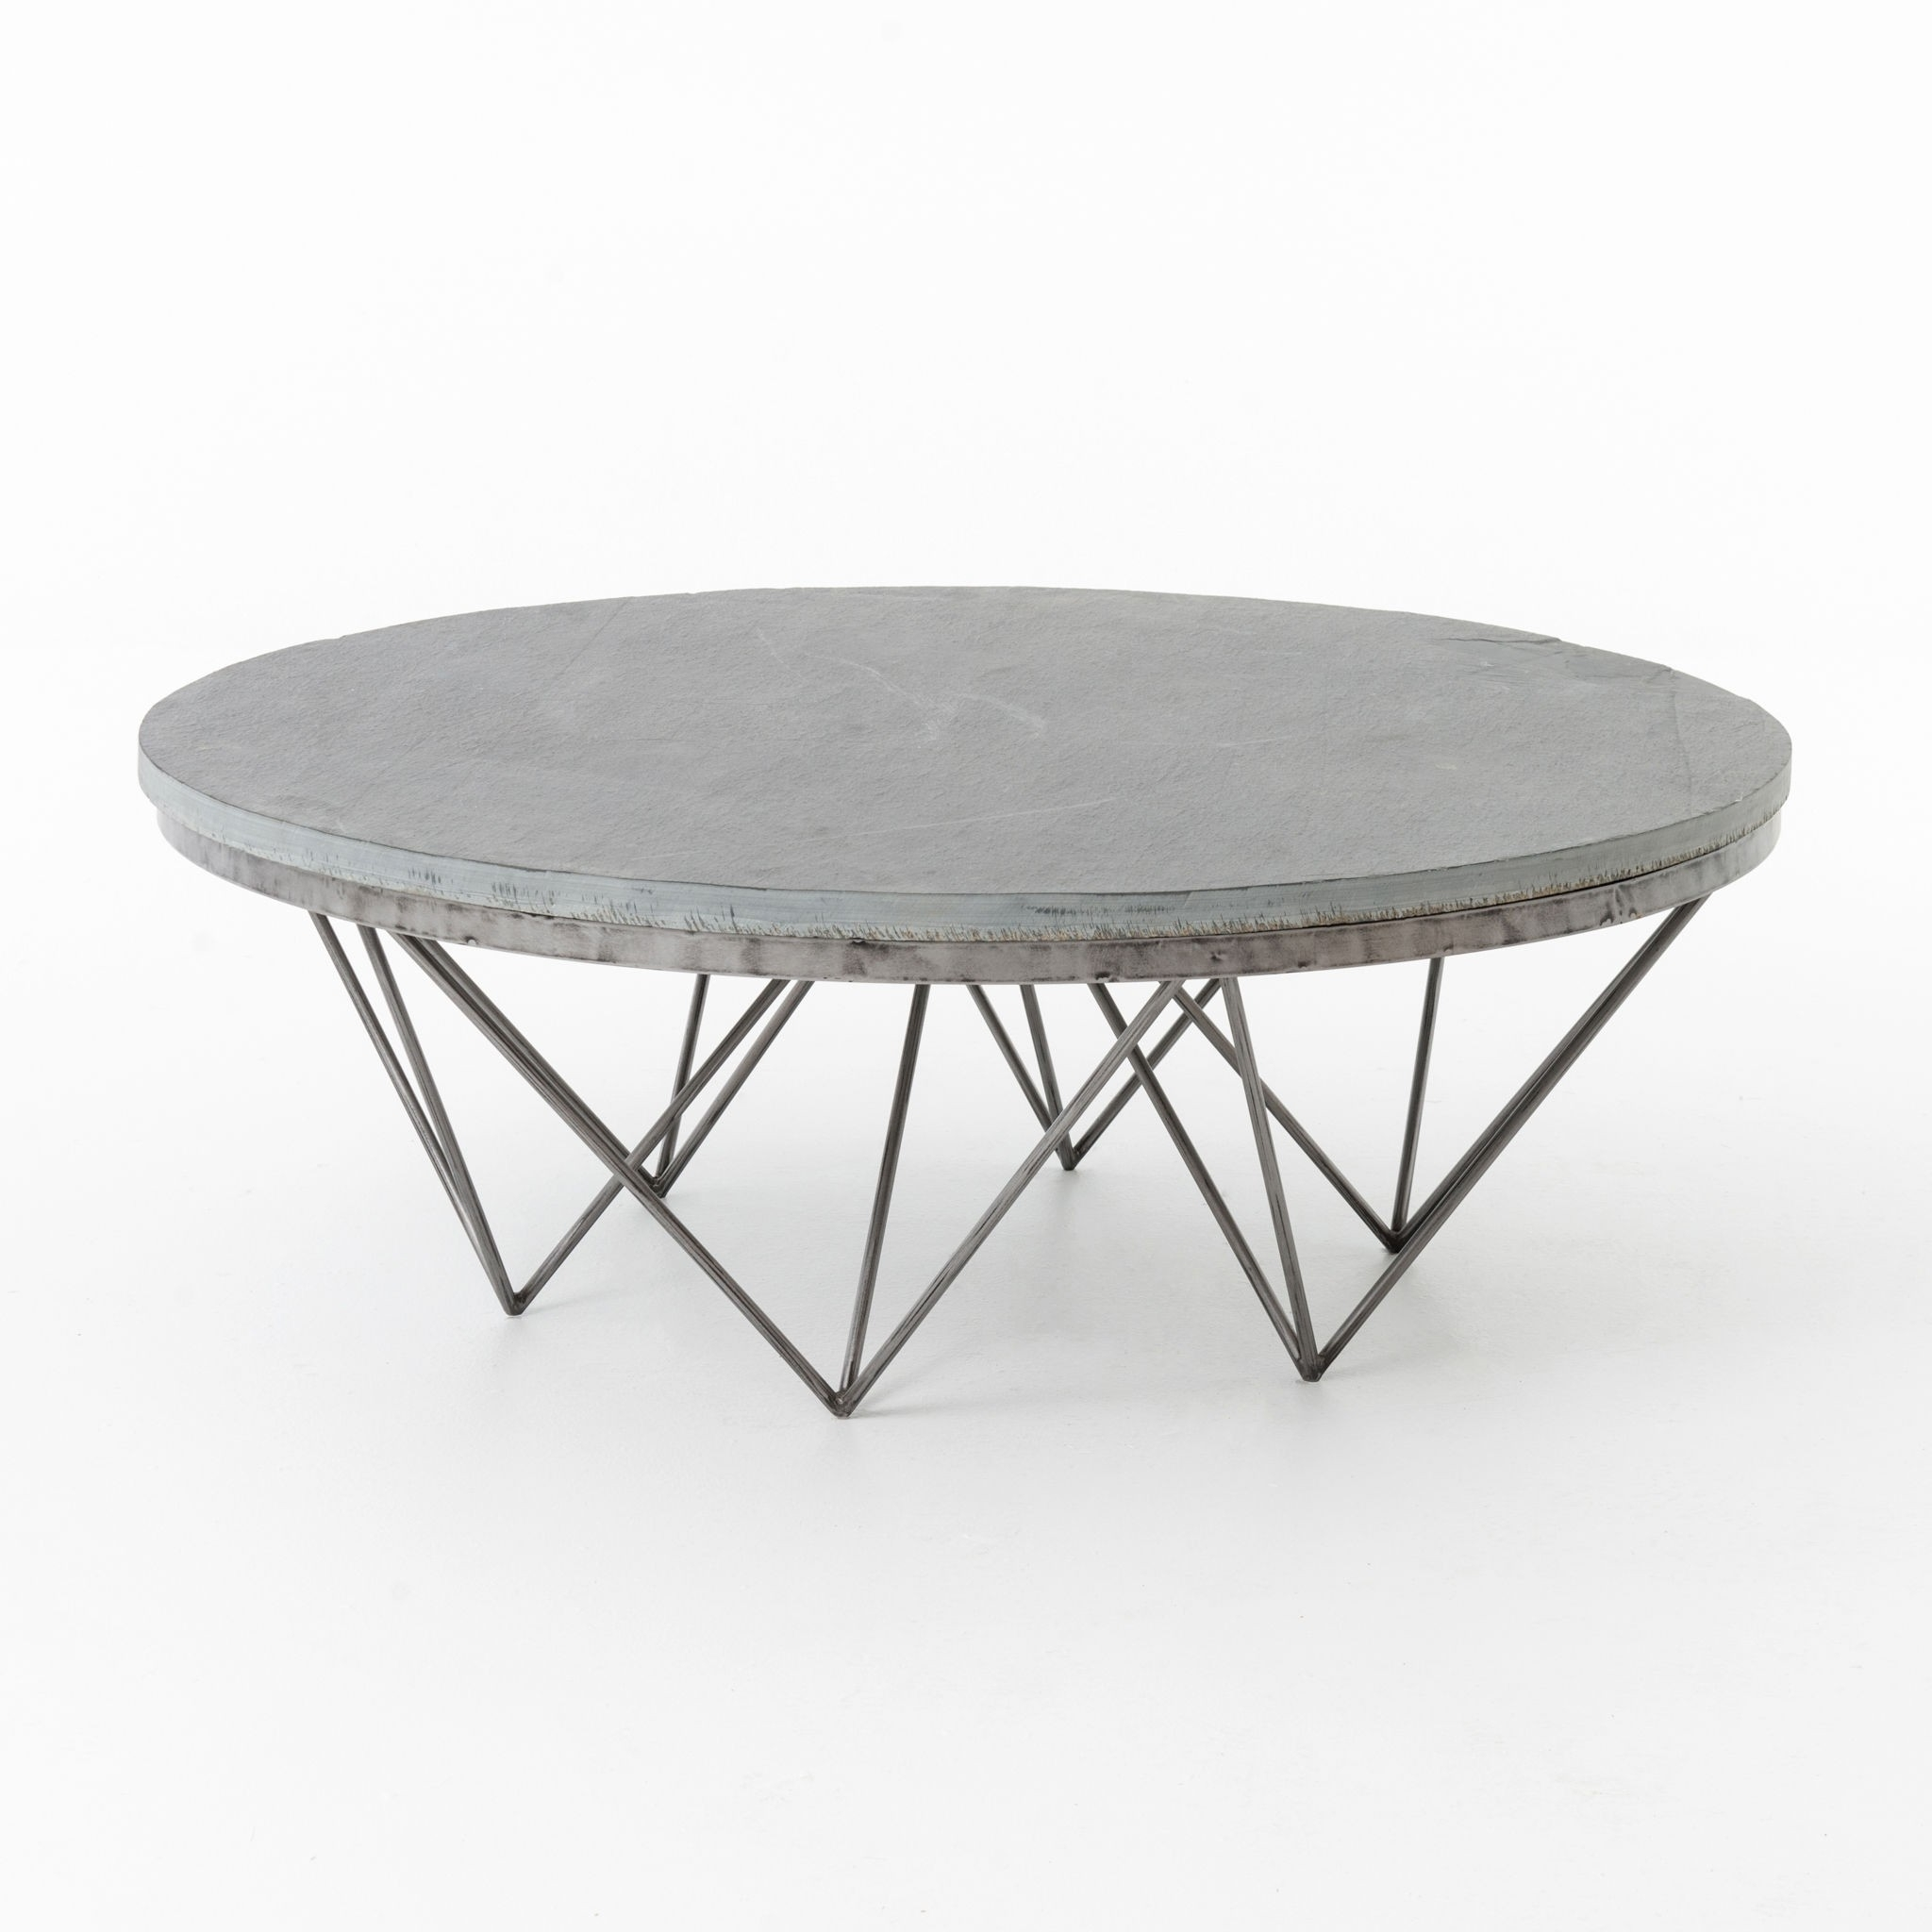 Round Modern Coffee Table | Furniture Design intended for Modern Marble Iron Coffee Tables (Image 29 of 30)